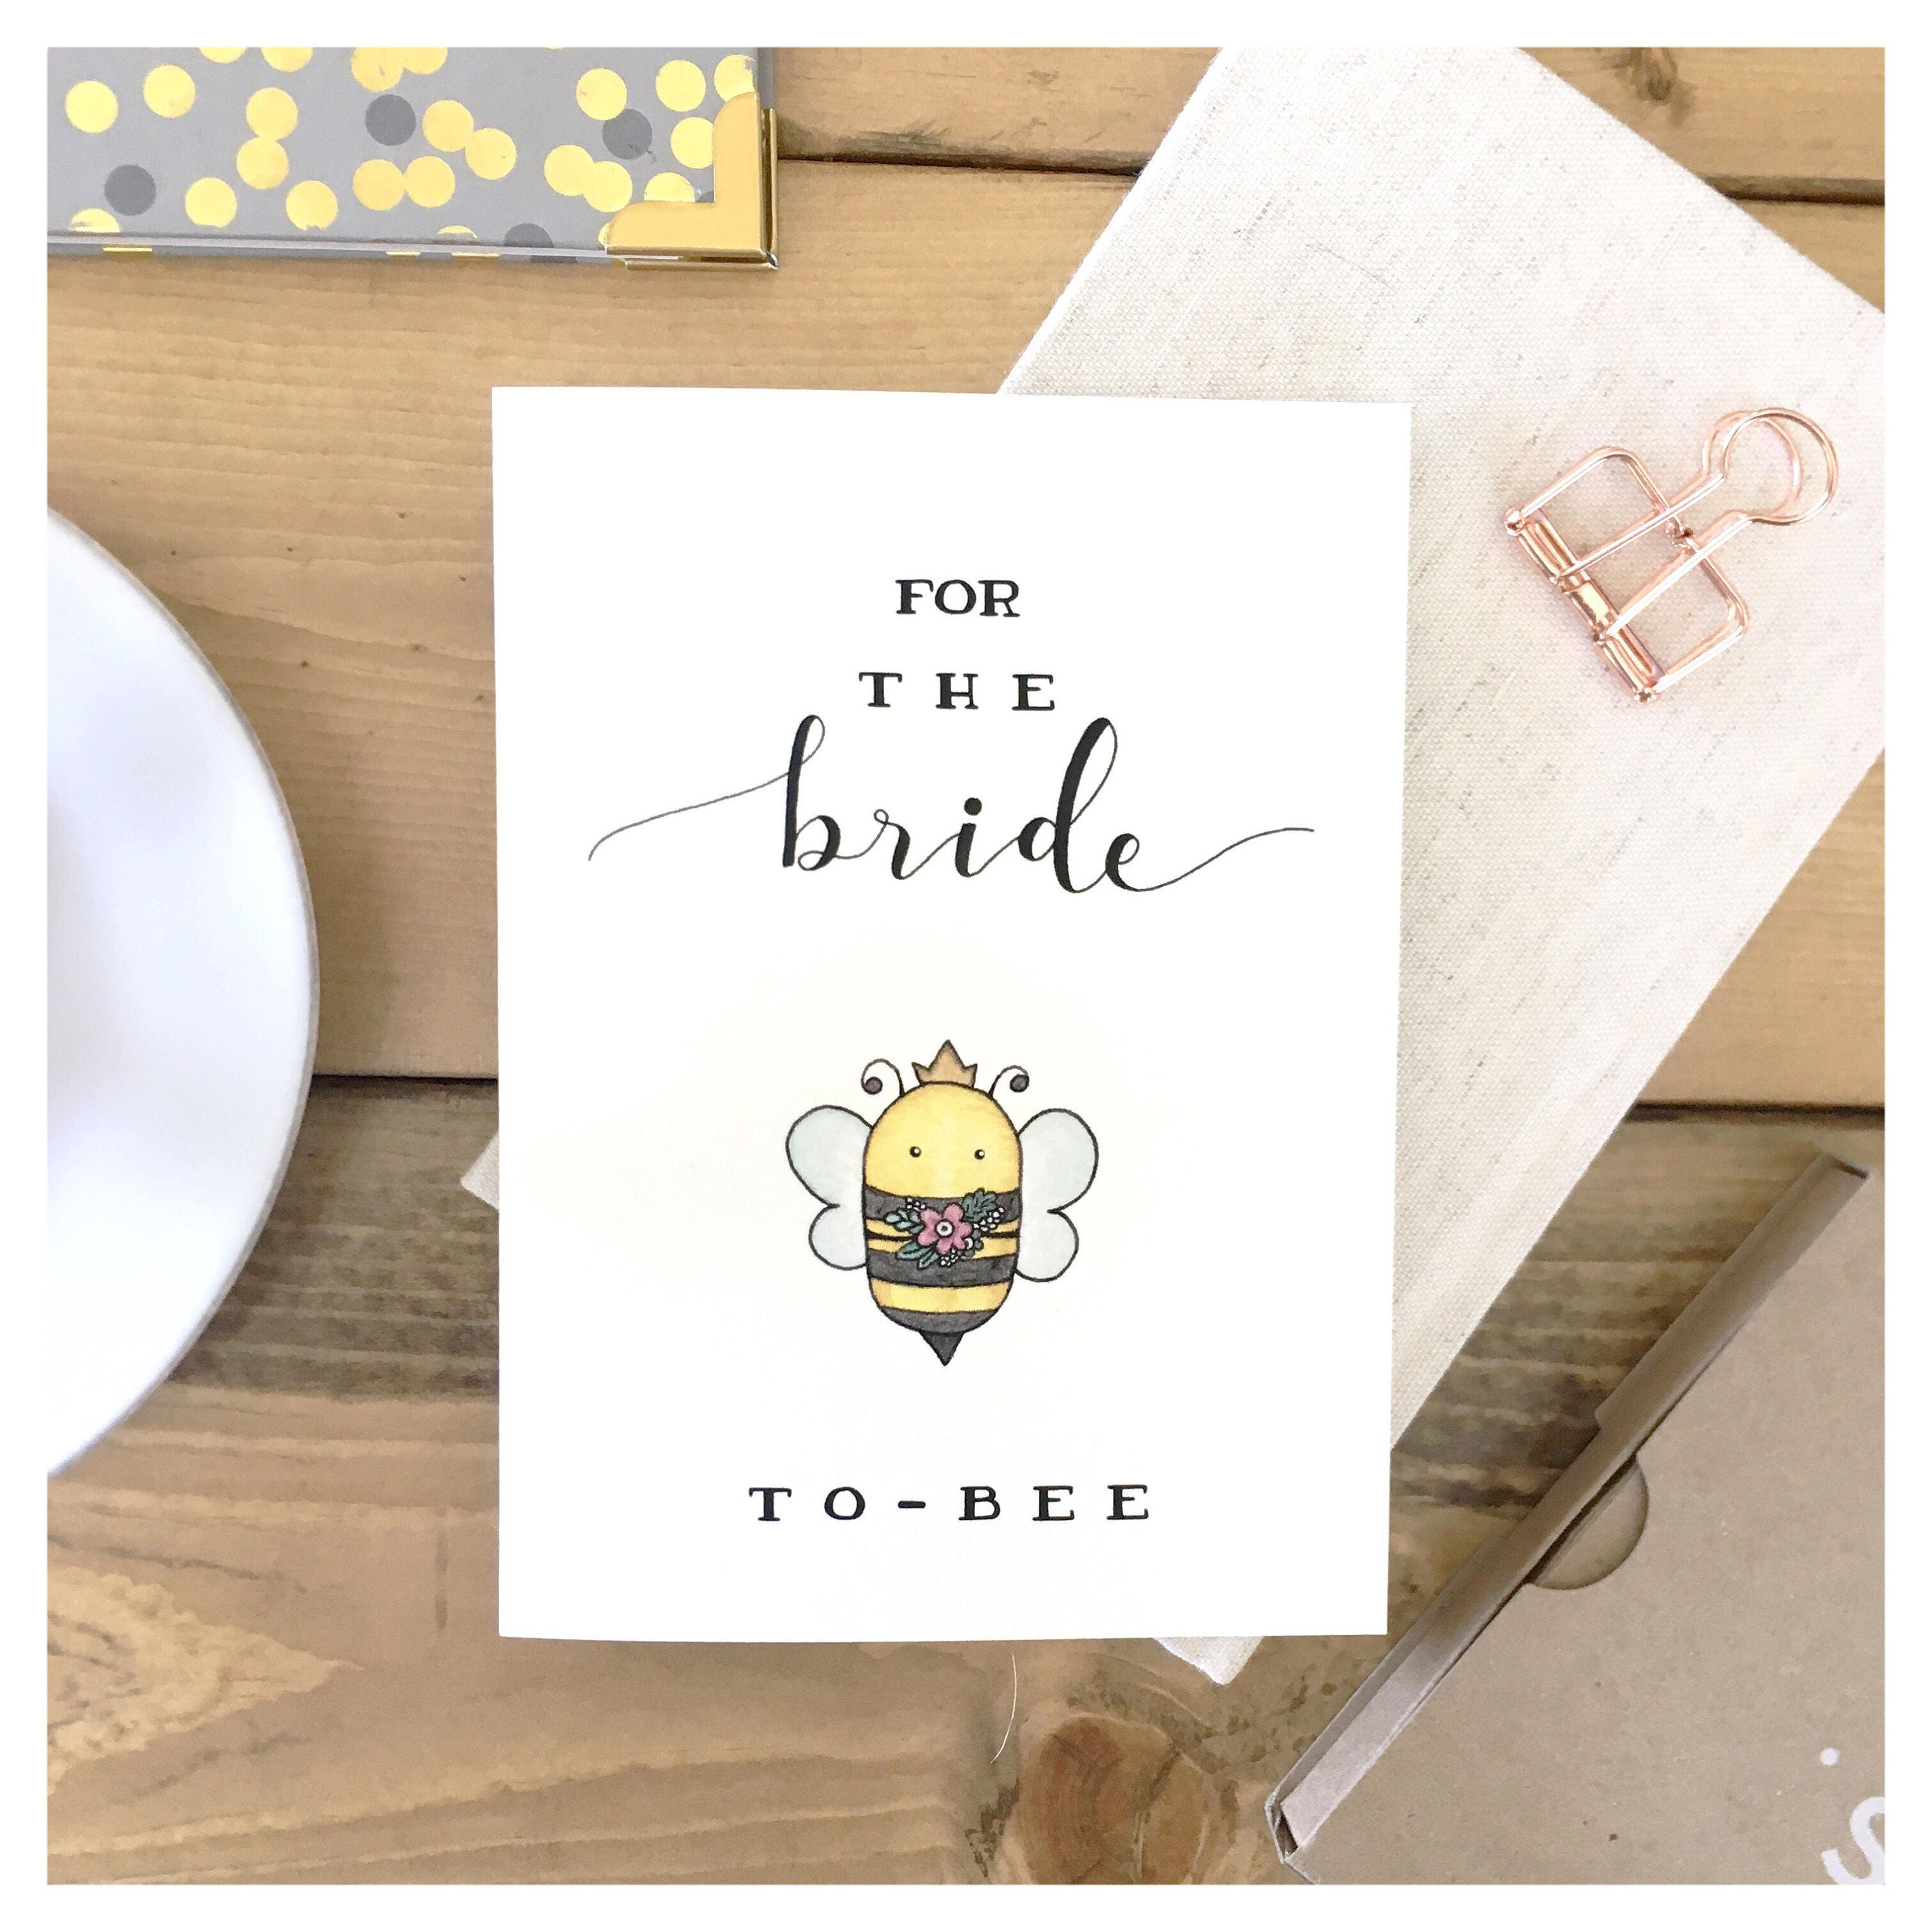 BRIDE TO BE Card For Bride Wedding Bridal Shower Funny Cute